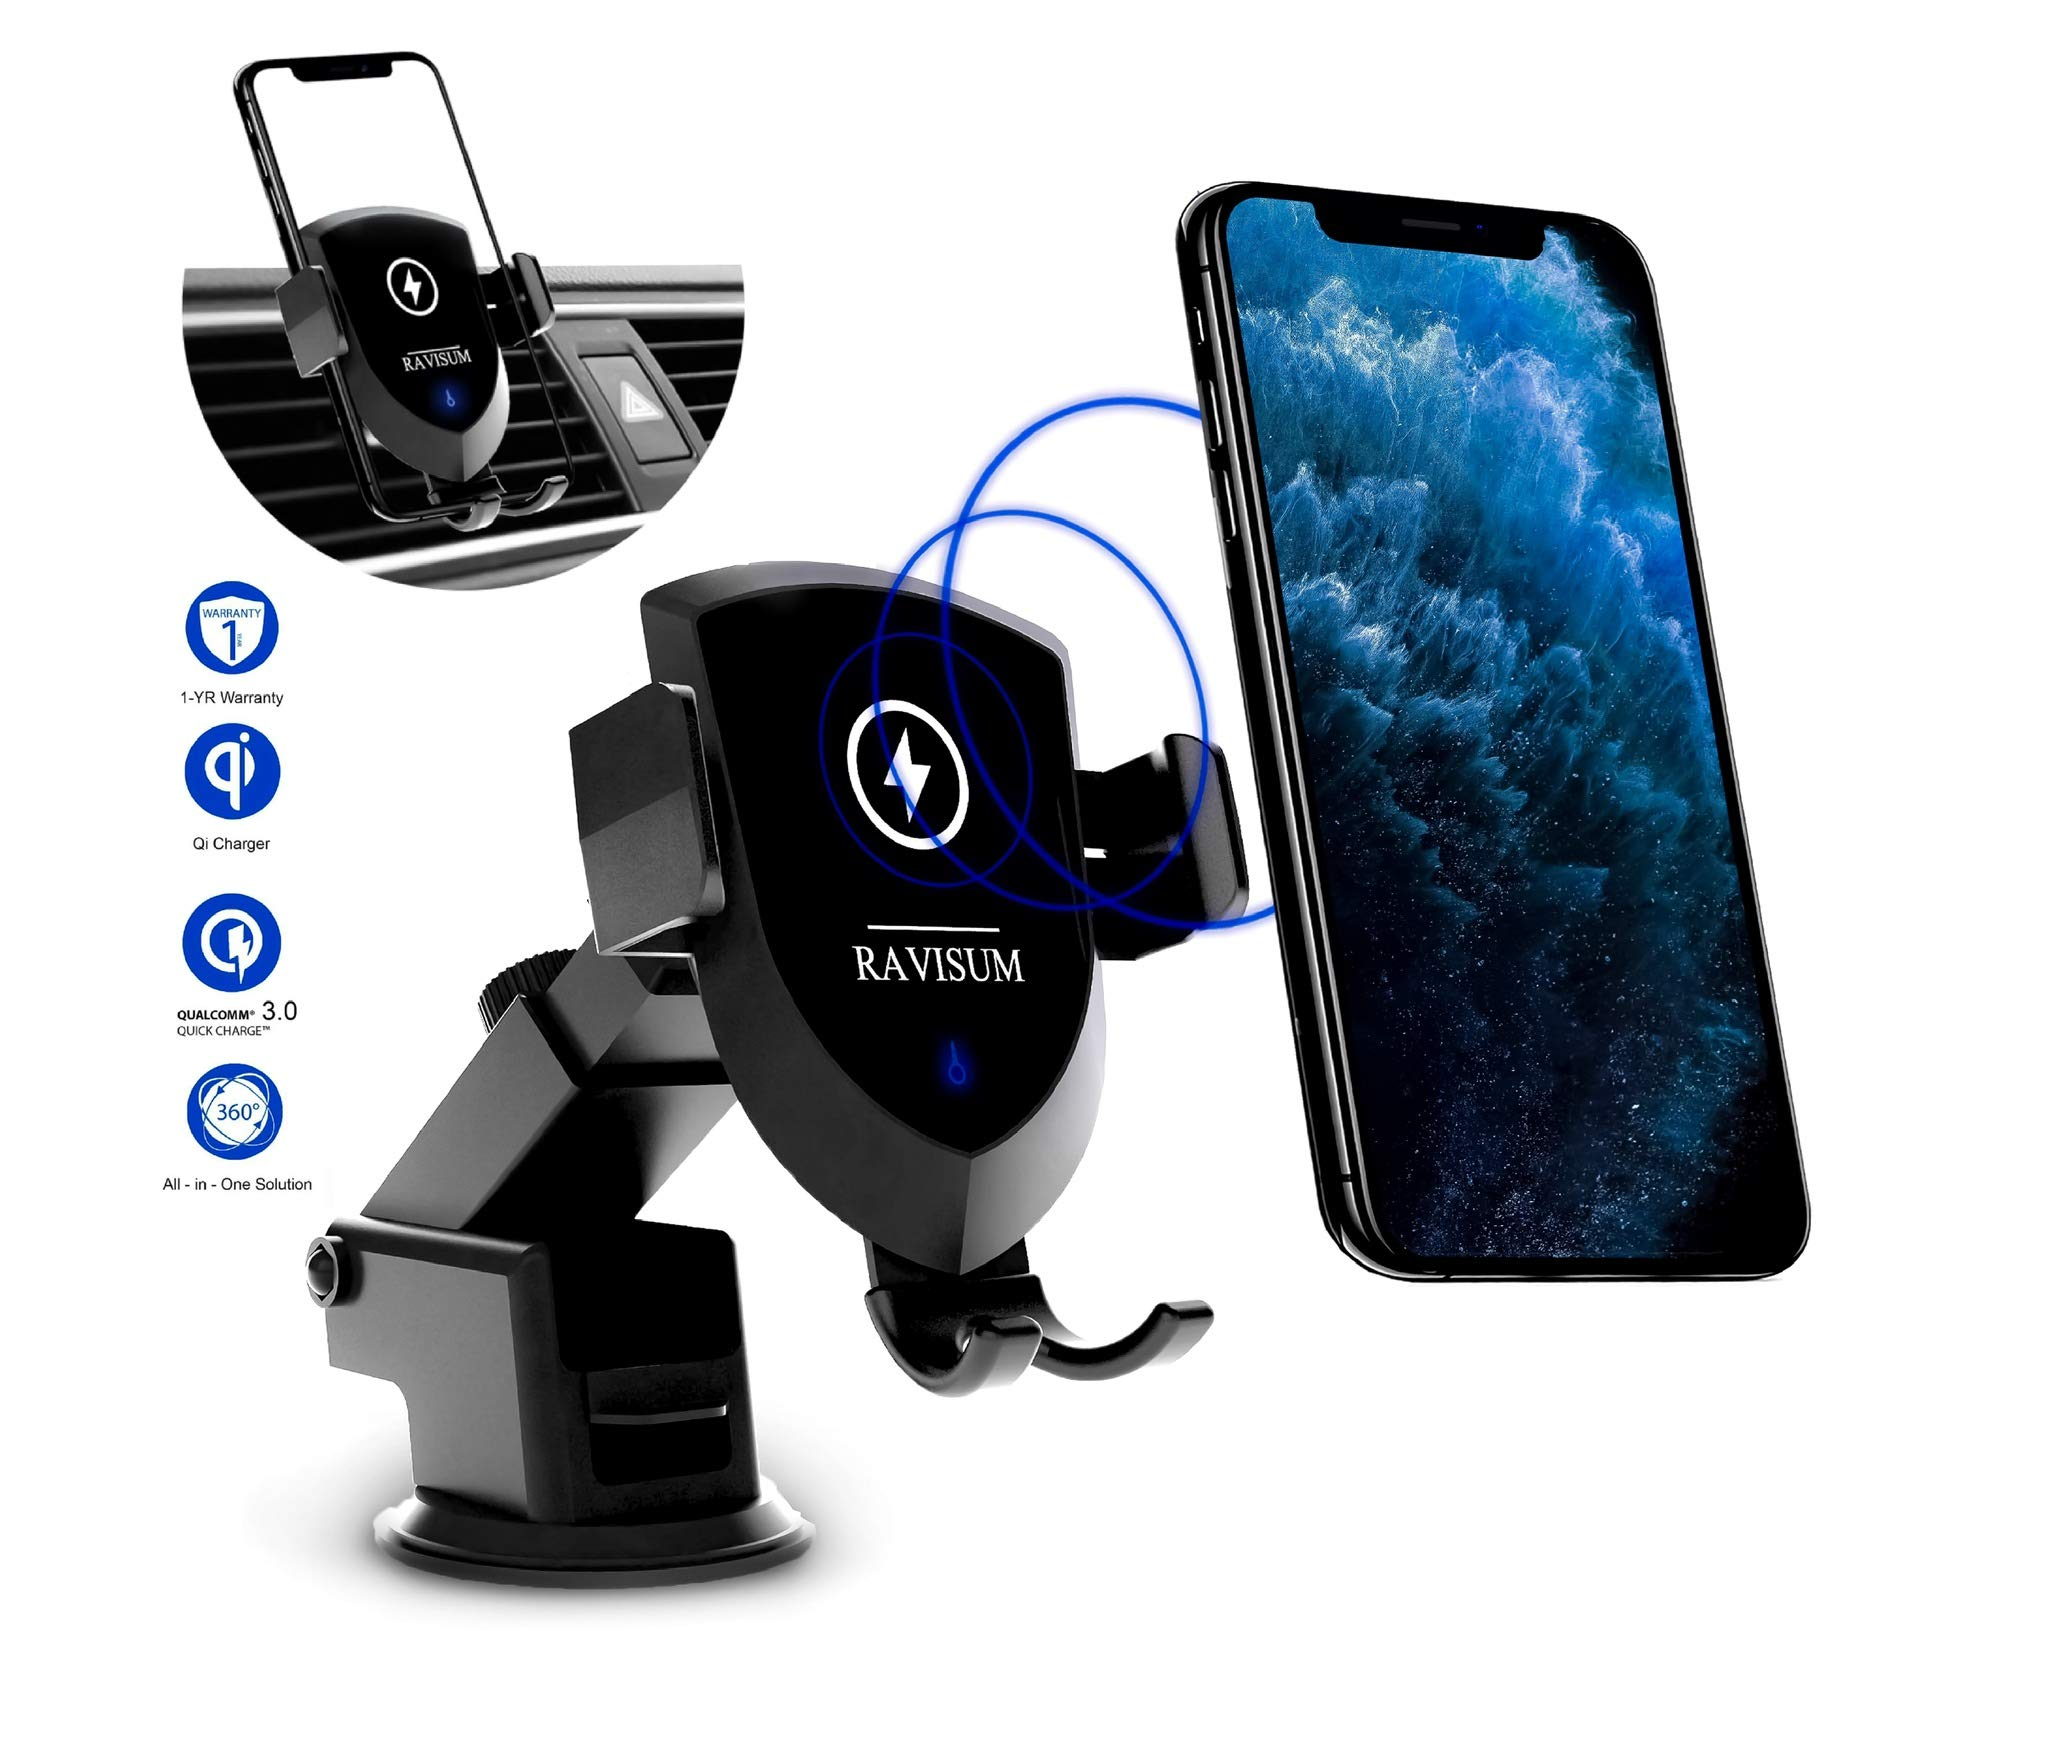 RAVISUM Luxury Wireless Car Charger Mount |10W 7.5W Fast Charge Car Mount with Dual USB Car Charger, Windshield & Air Vent Mount, Compatible with iPhone 11/11 Pro Max/X/8/8+ Samsung S8/S9/S10/Note10 by RAVISUM